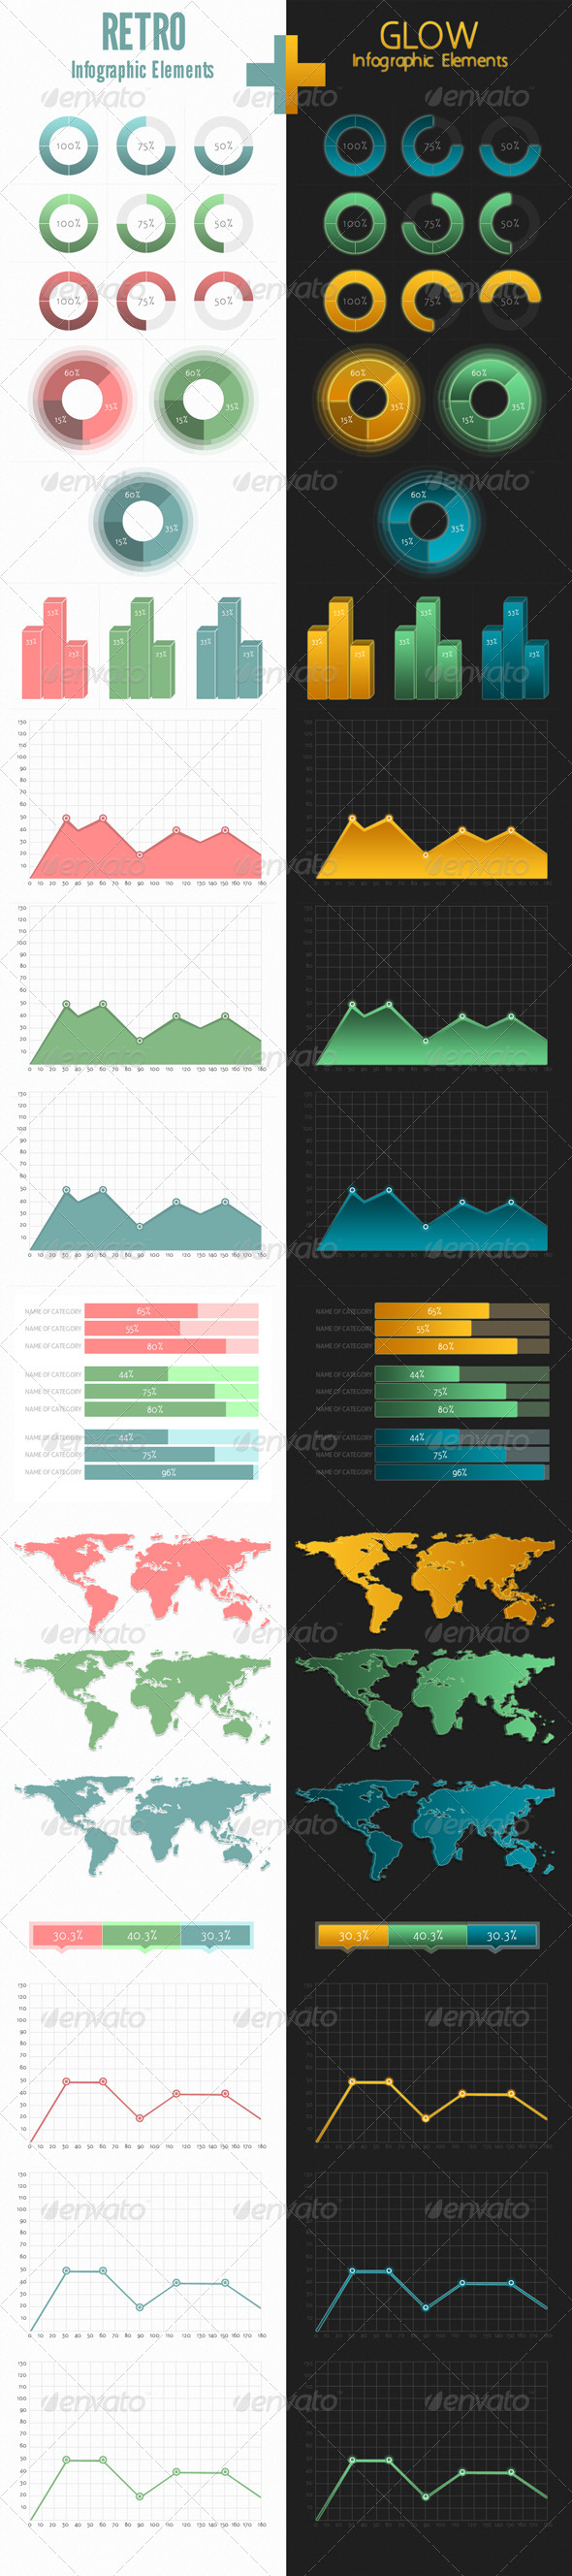 GraphicRiver Retro&Glow Infographic 4280196